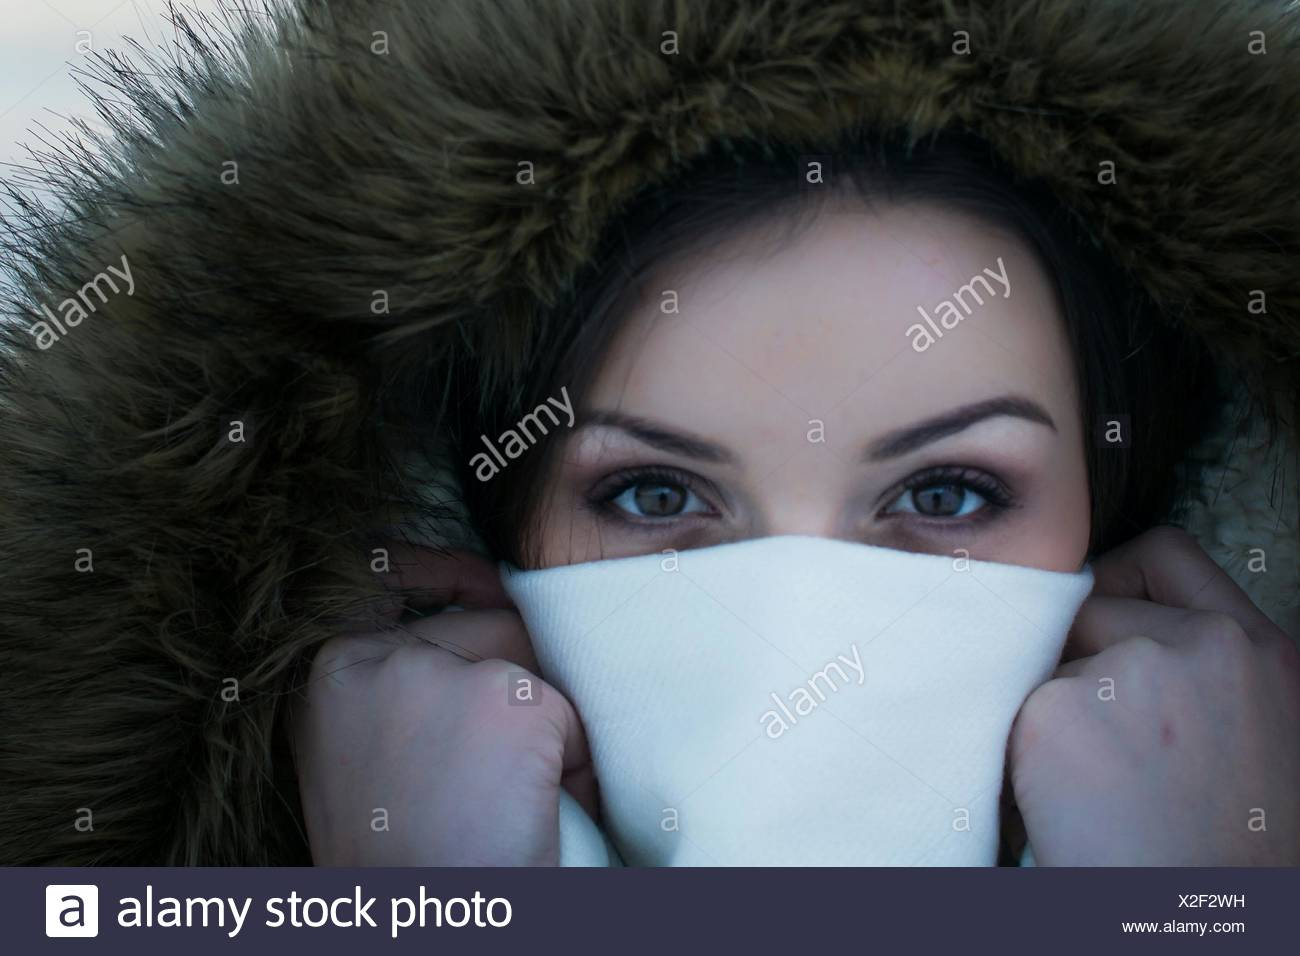 Close-Up Portrait Of Young Woman Covering Face With Napkin - Stock Image